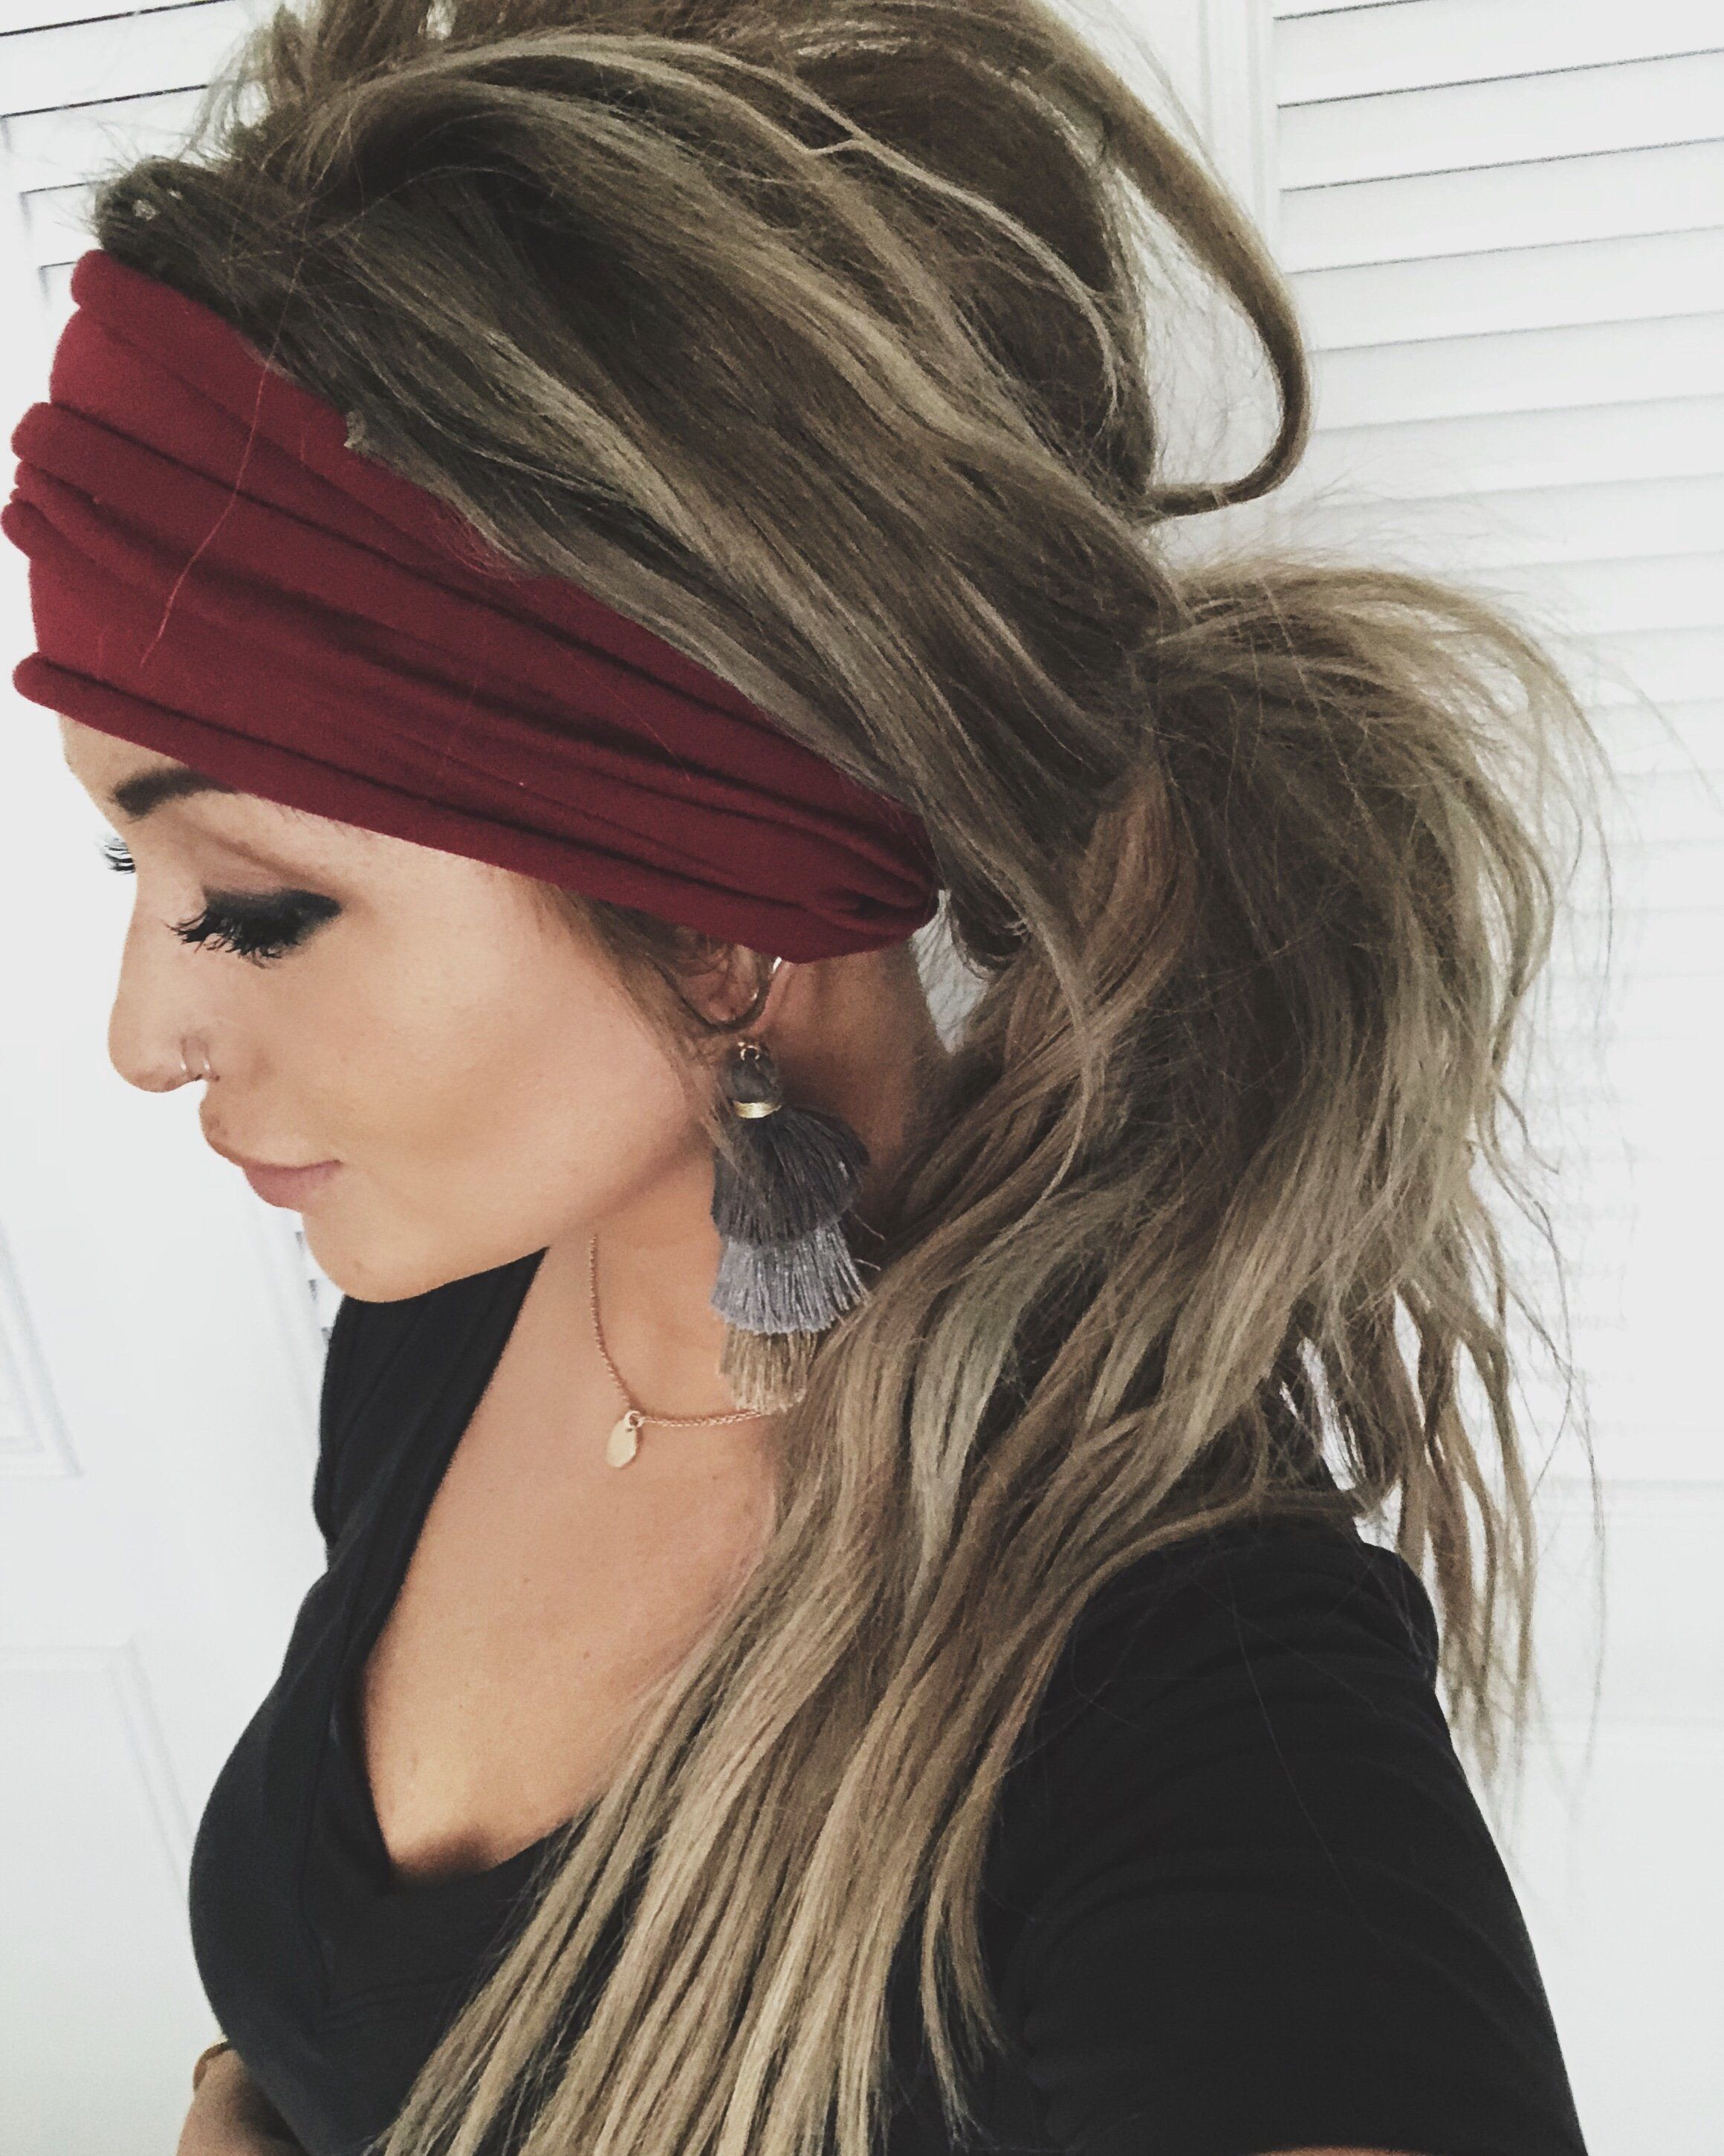 Extra Wide Headband Twist Turban Scarlet Hippie Headband Hairstyles Headband Hairstyles Hair Styles